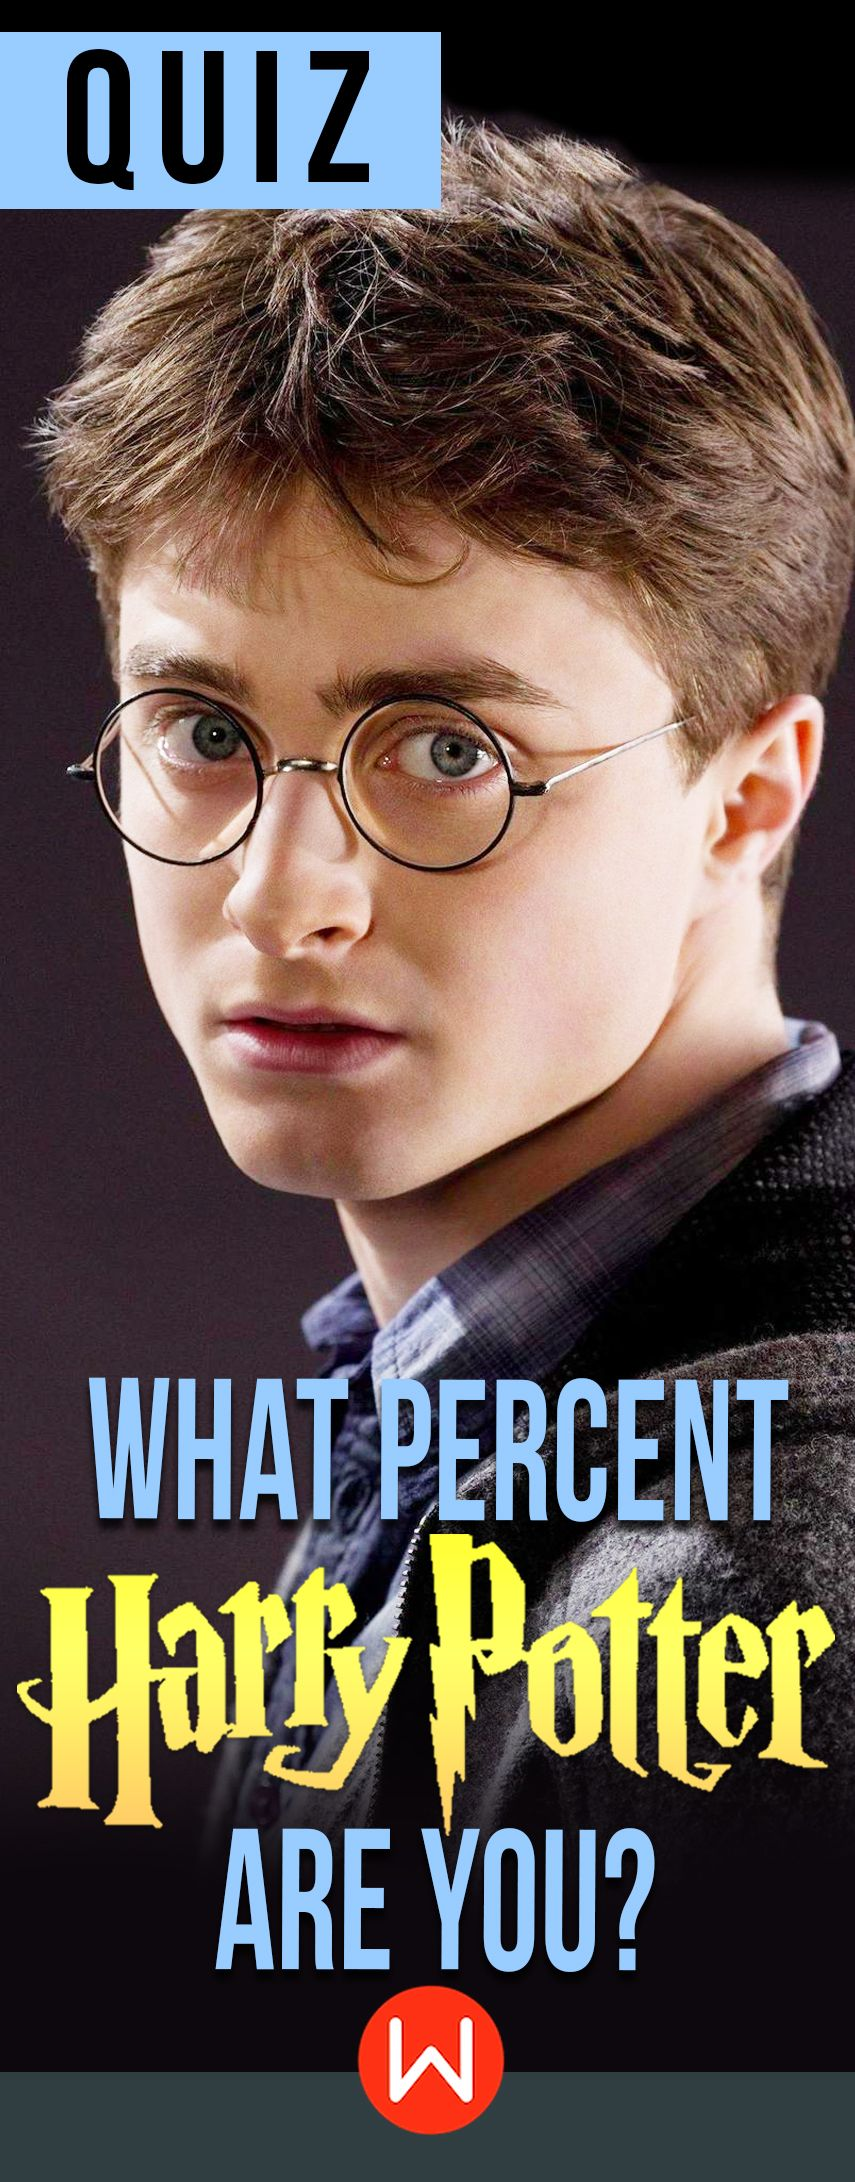 Quiz: What Percent Harry Potter Are You? | Harry Potter